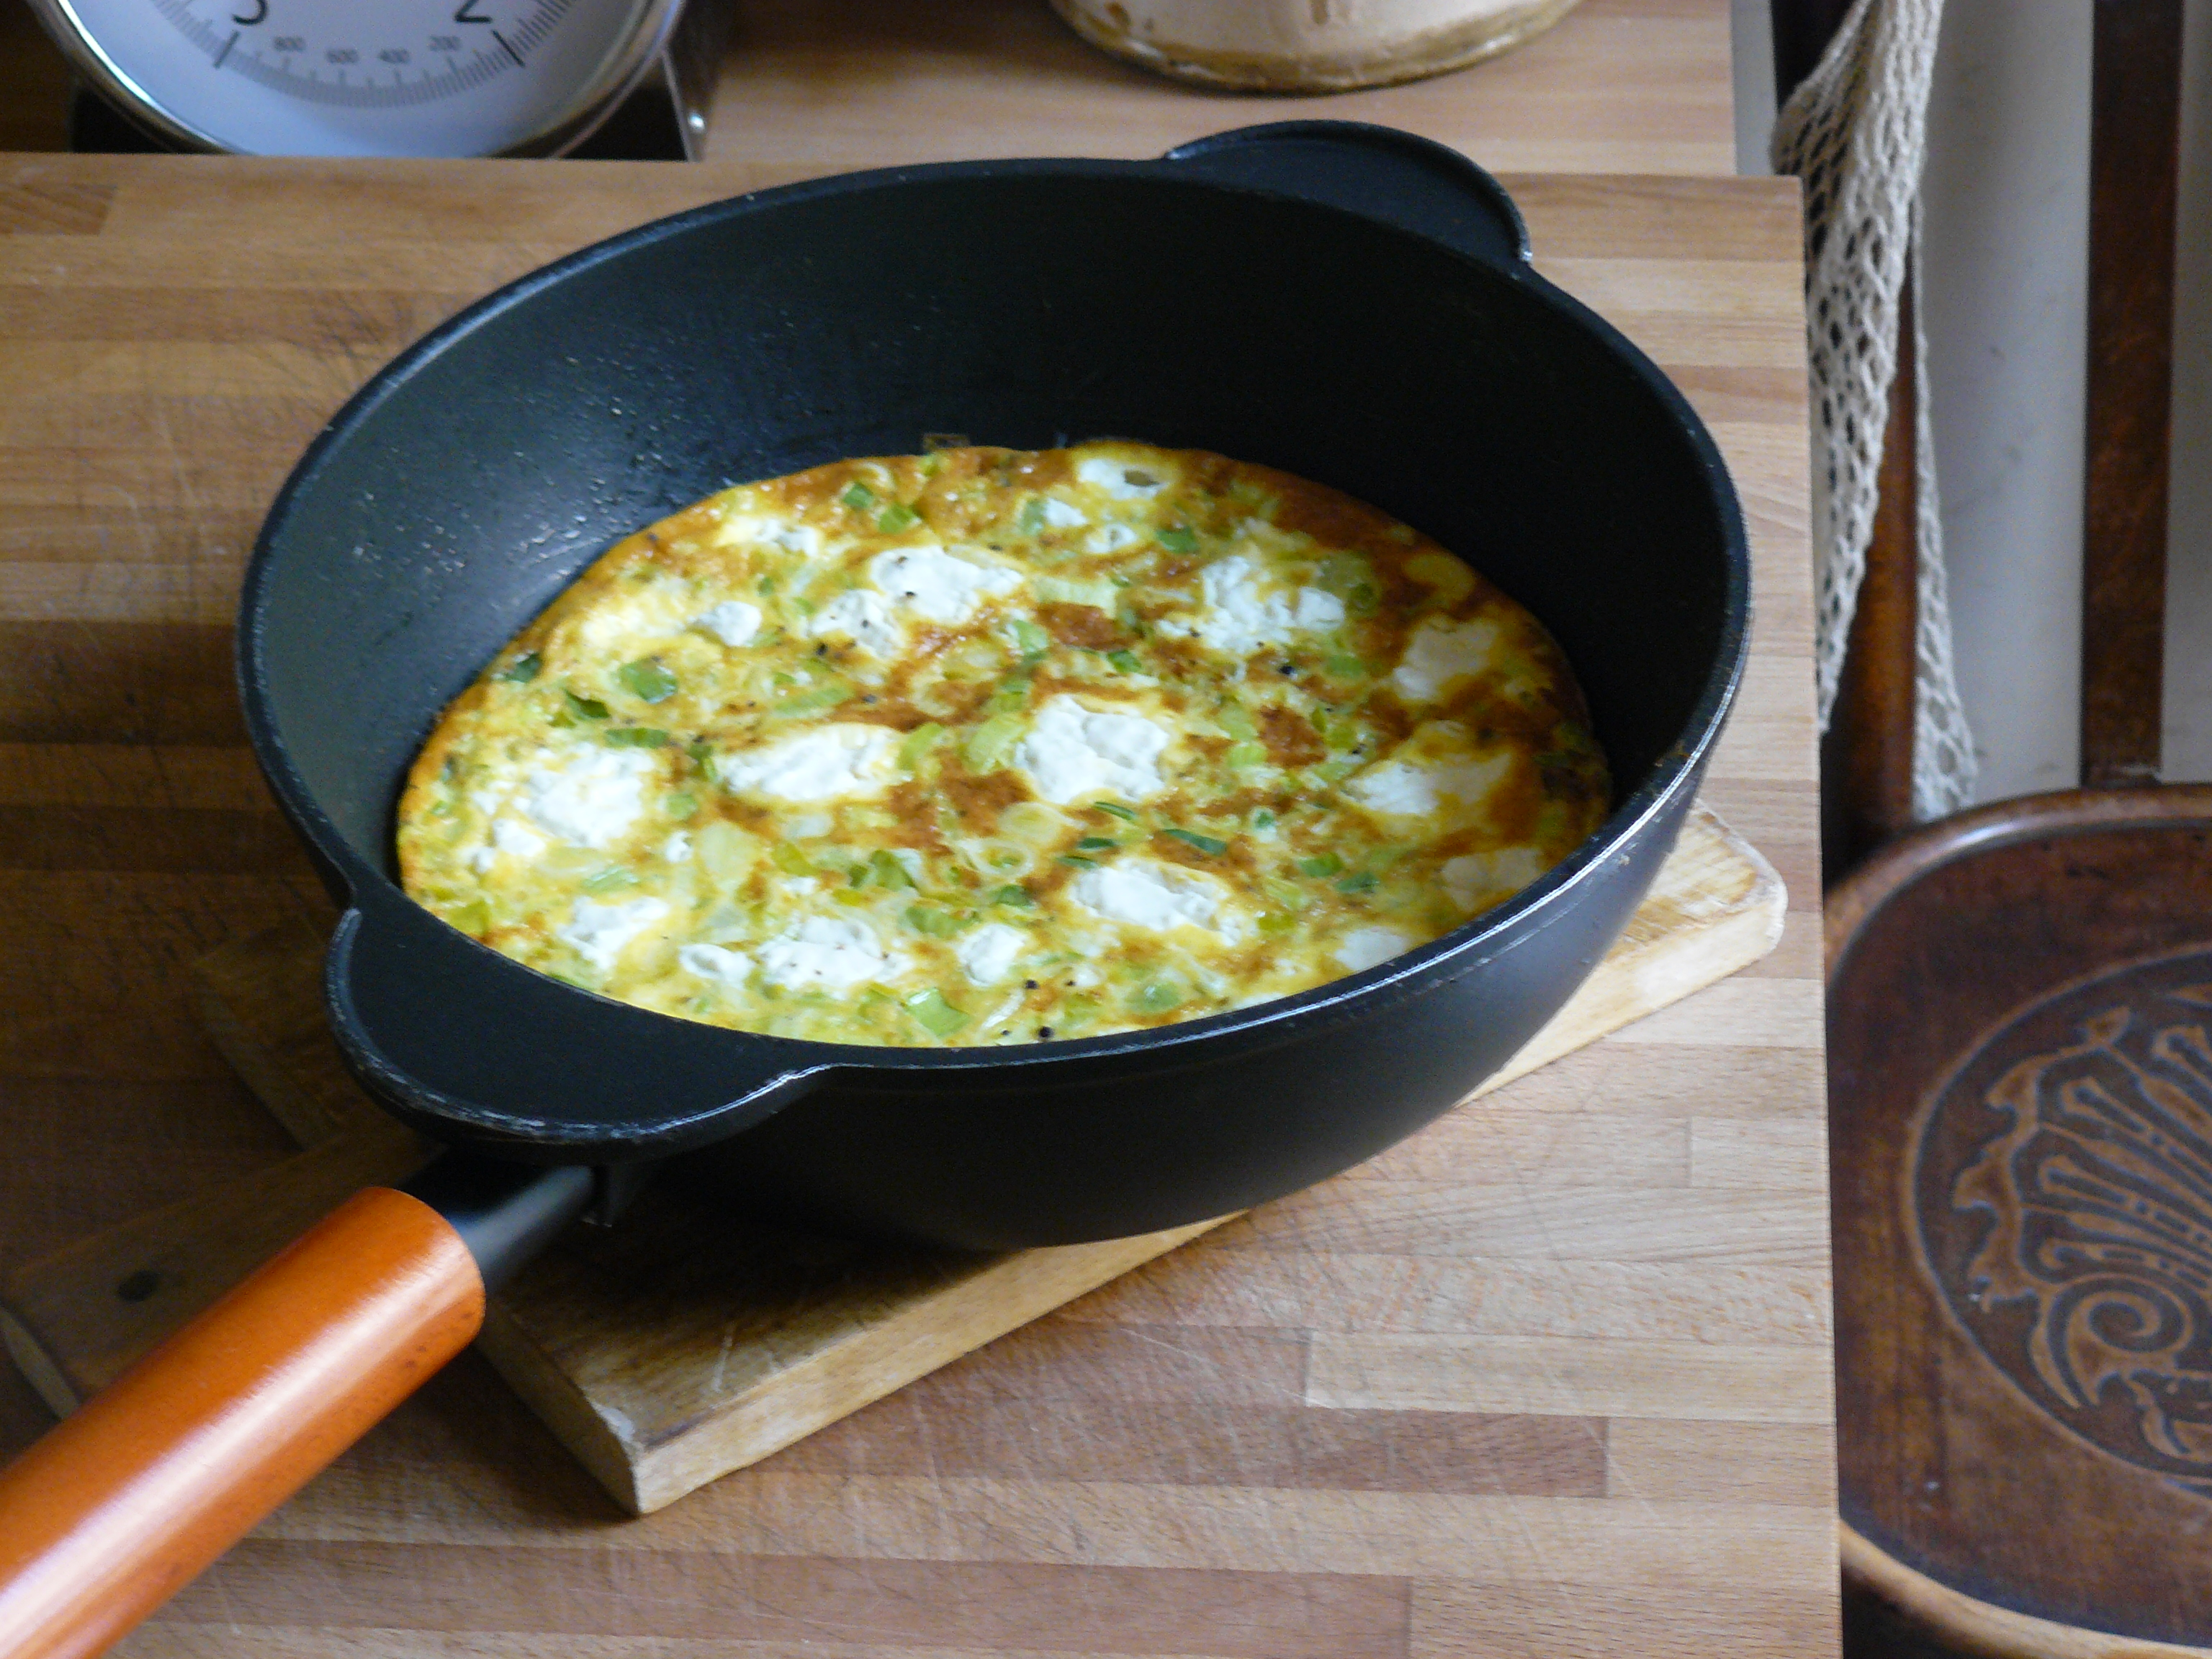 ... lemon thyme and goat cheese lemon frittata with leeks and goat cheese